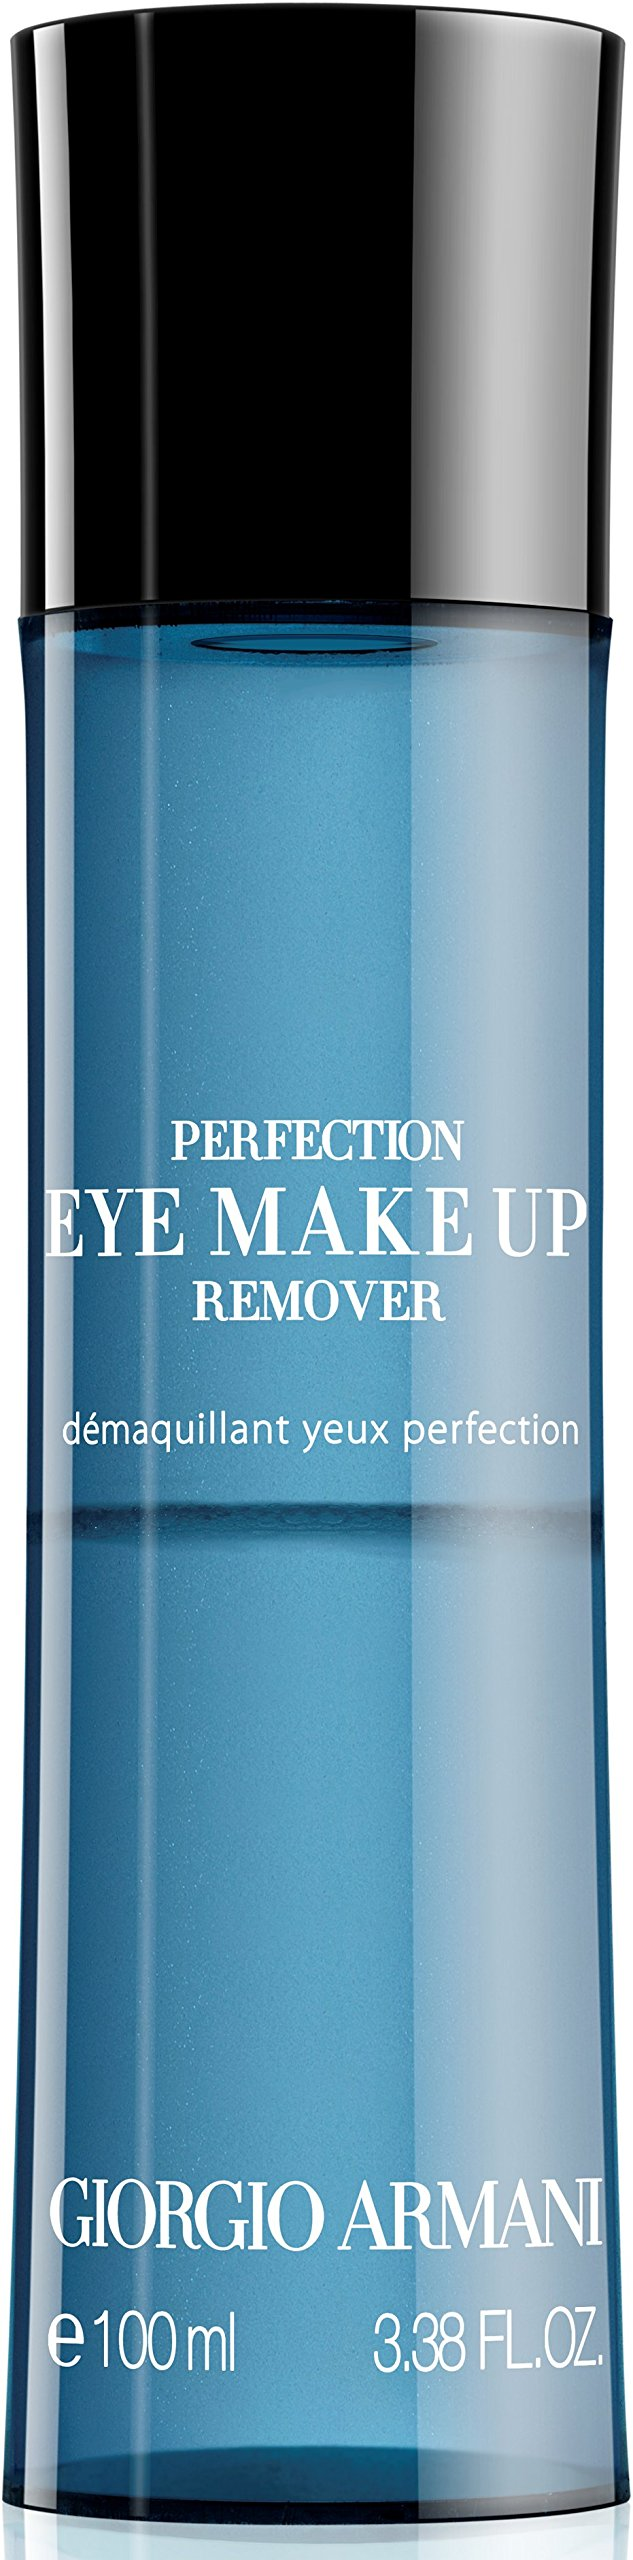 Giorgio Armani 'Perfection' Eye Make-Up Remover by GIORGIO ARMANI